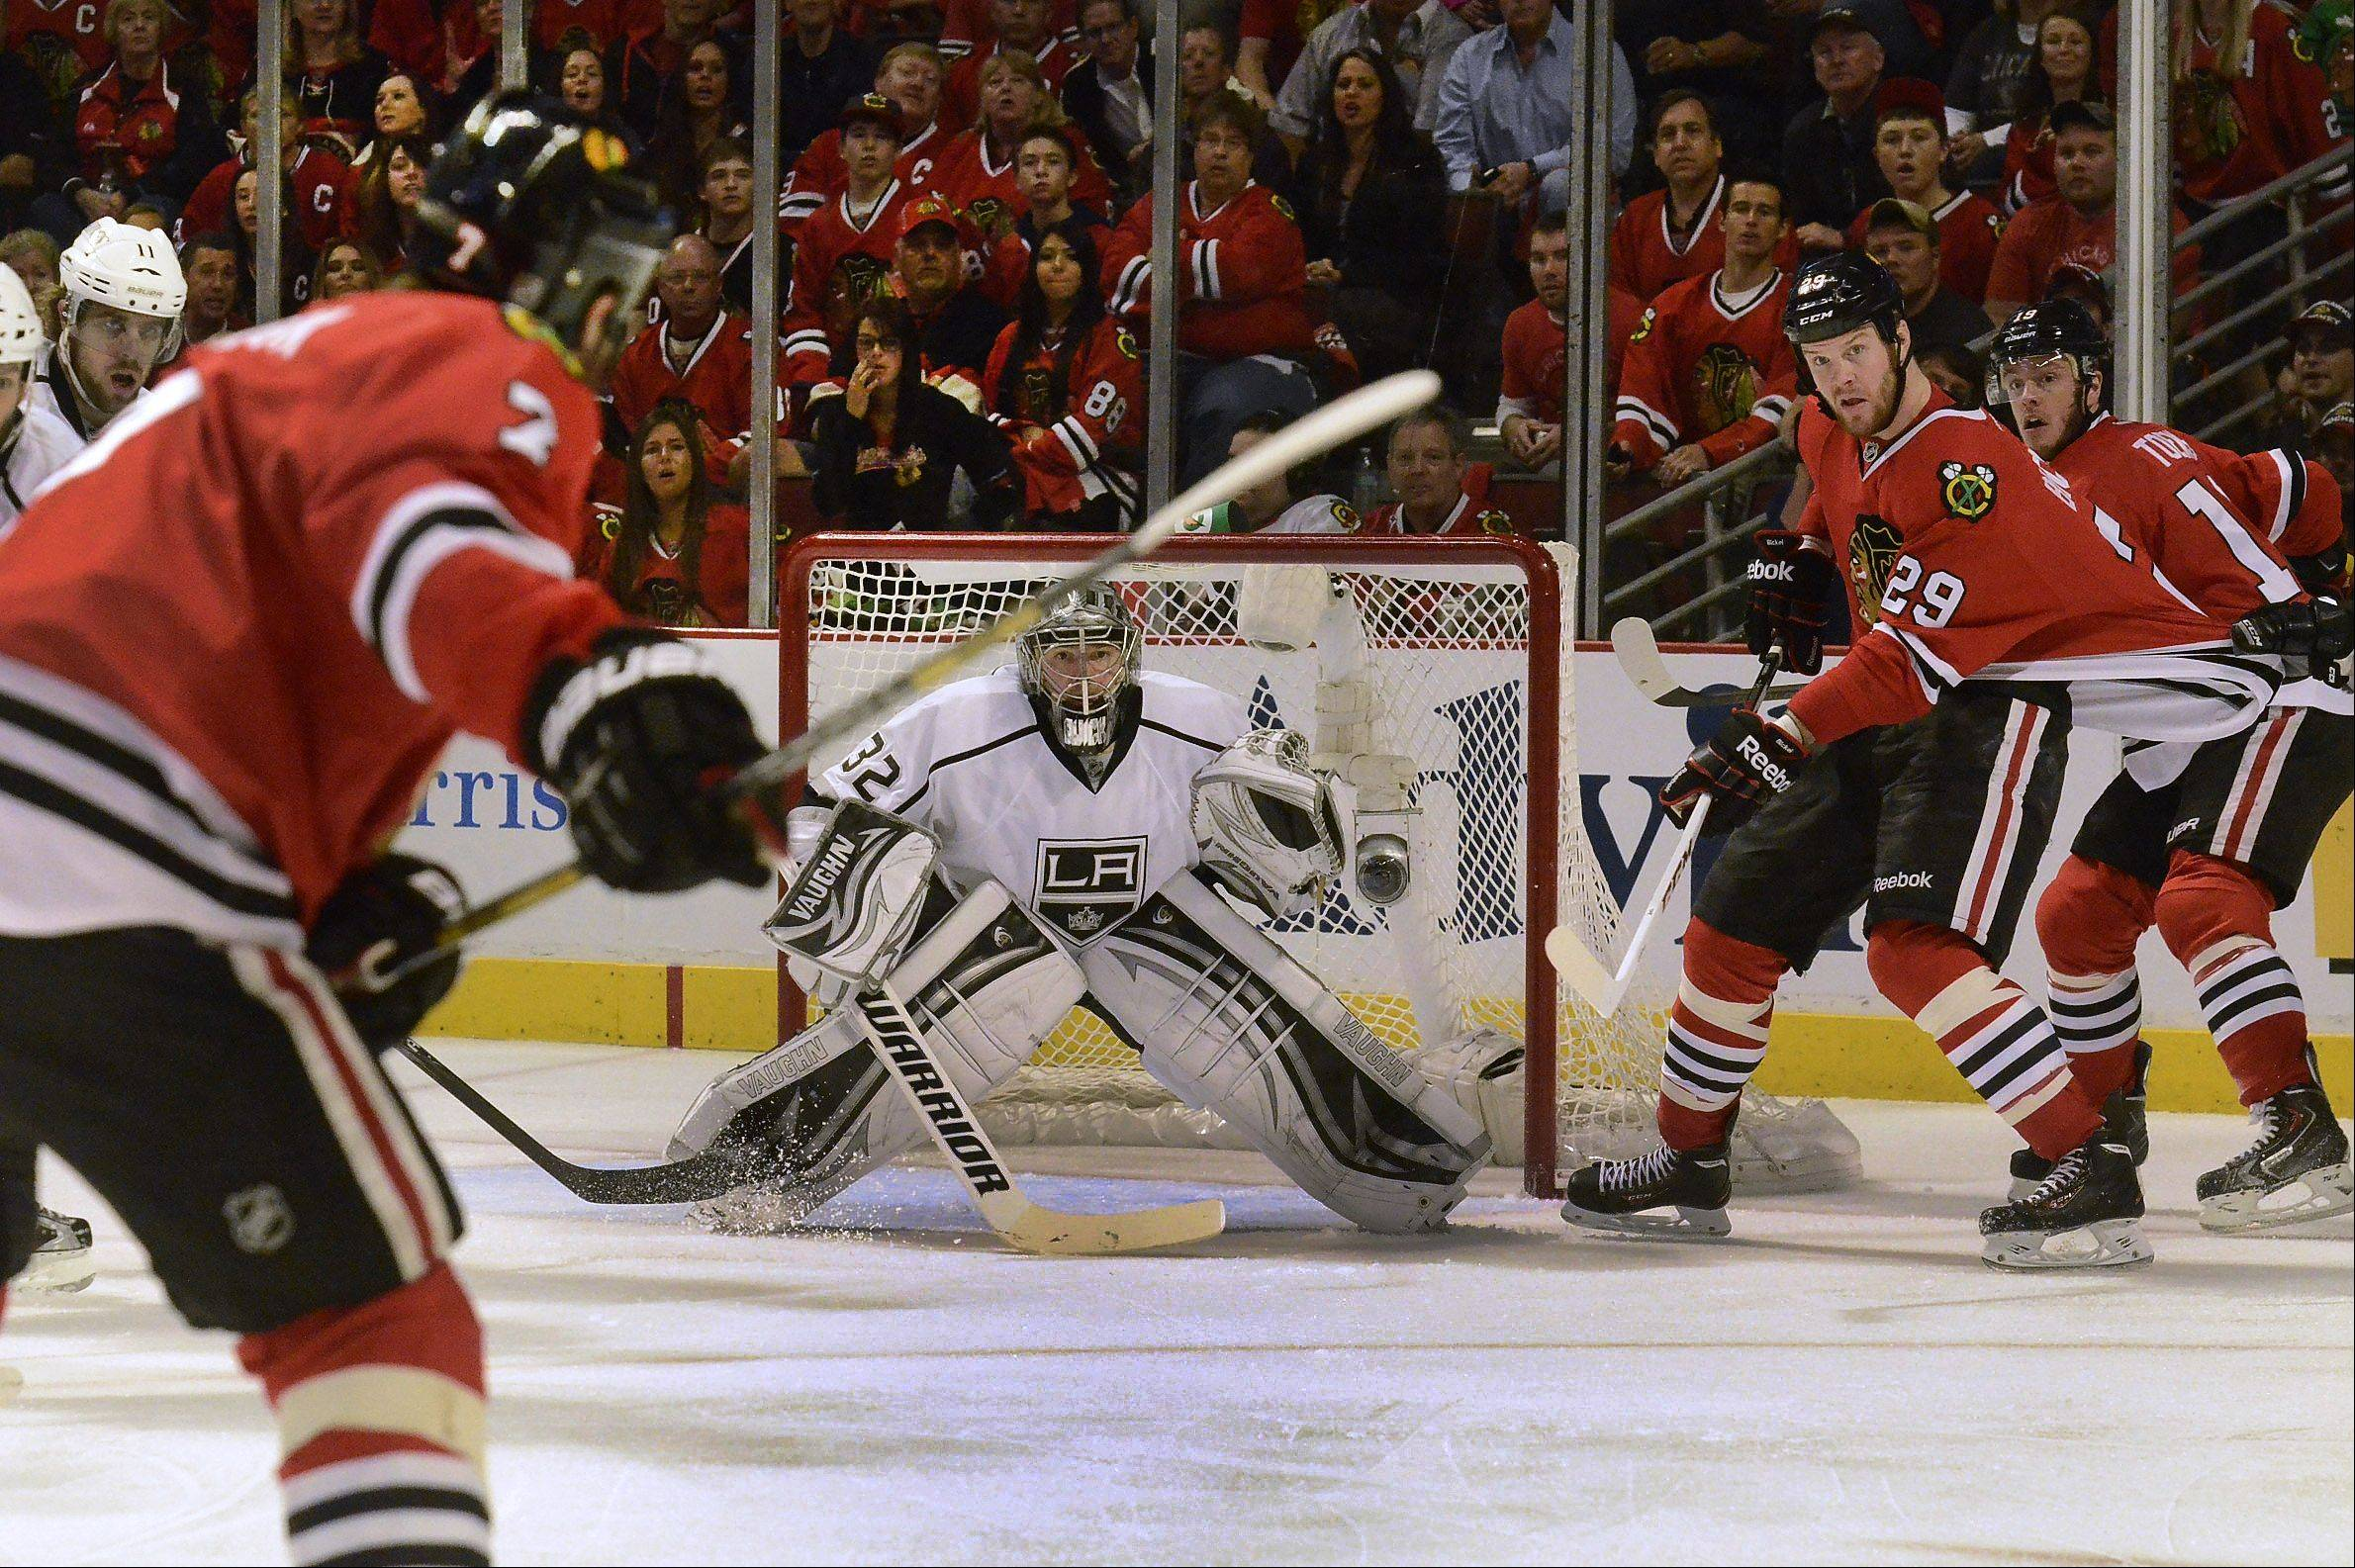 Brent Seabrook winds up for a slap shot on Jonathan Quick during the first period of Game 1 of the Western Conference finals. Quick made 34 saves in the Blackhawks' 2-1 victory.